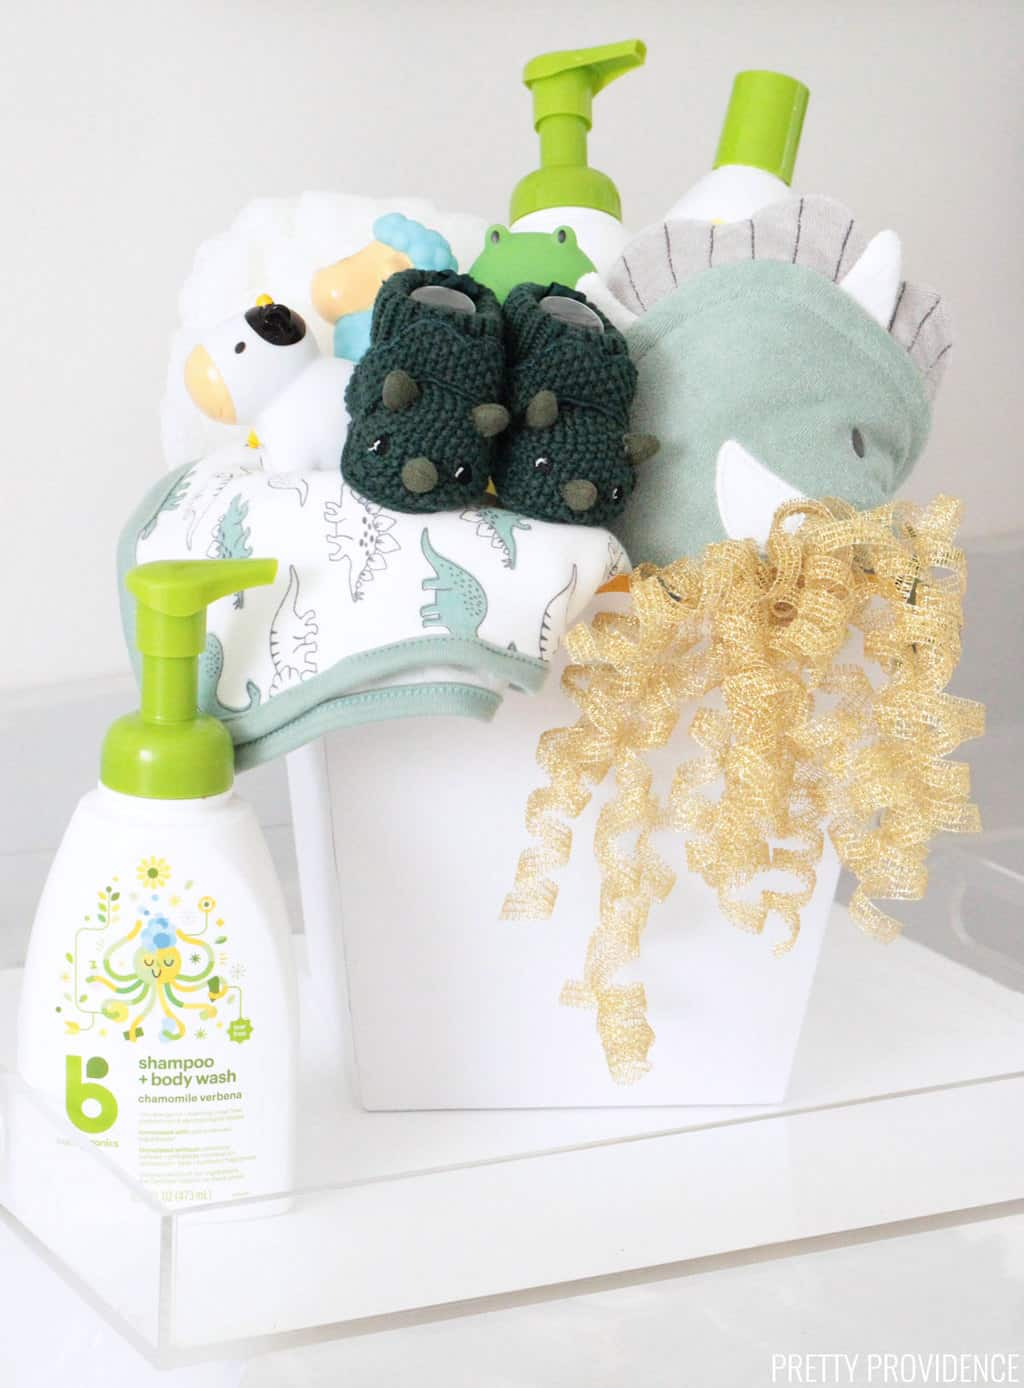 Baby Shower Gift basket with dinosaur towels, green dinosaur slippers, bath toys, baby shampoo and lotion